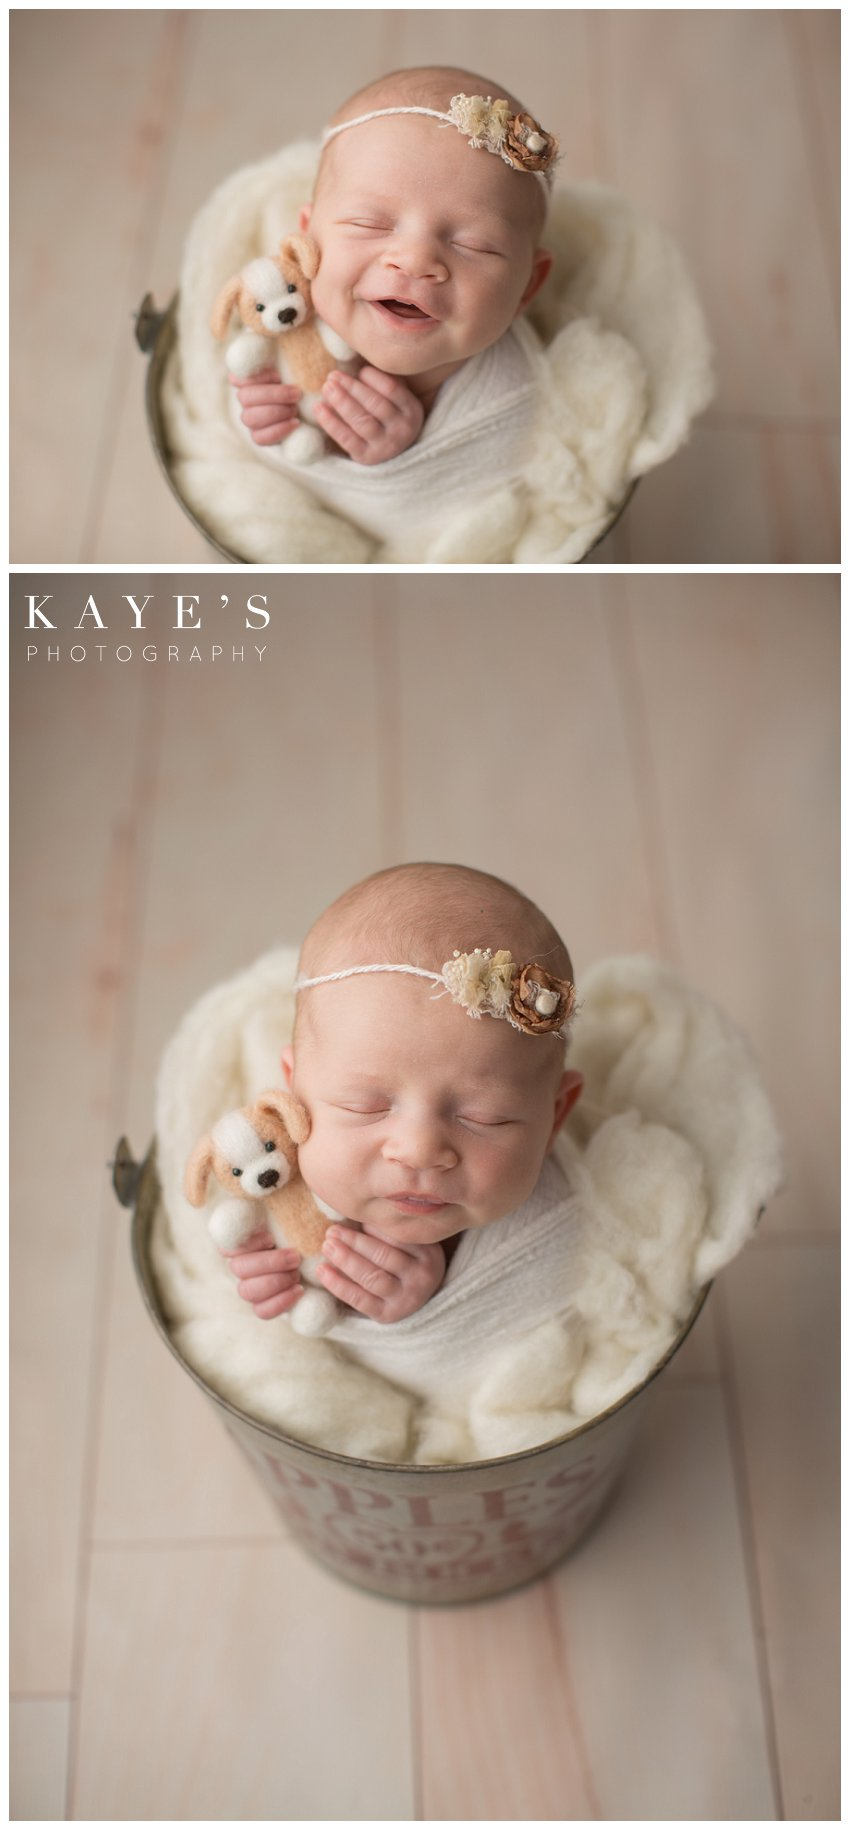 Newborn girl smiling with puppy during professional baby photos